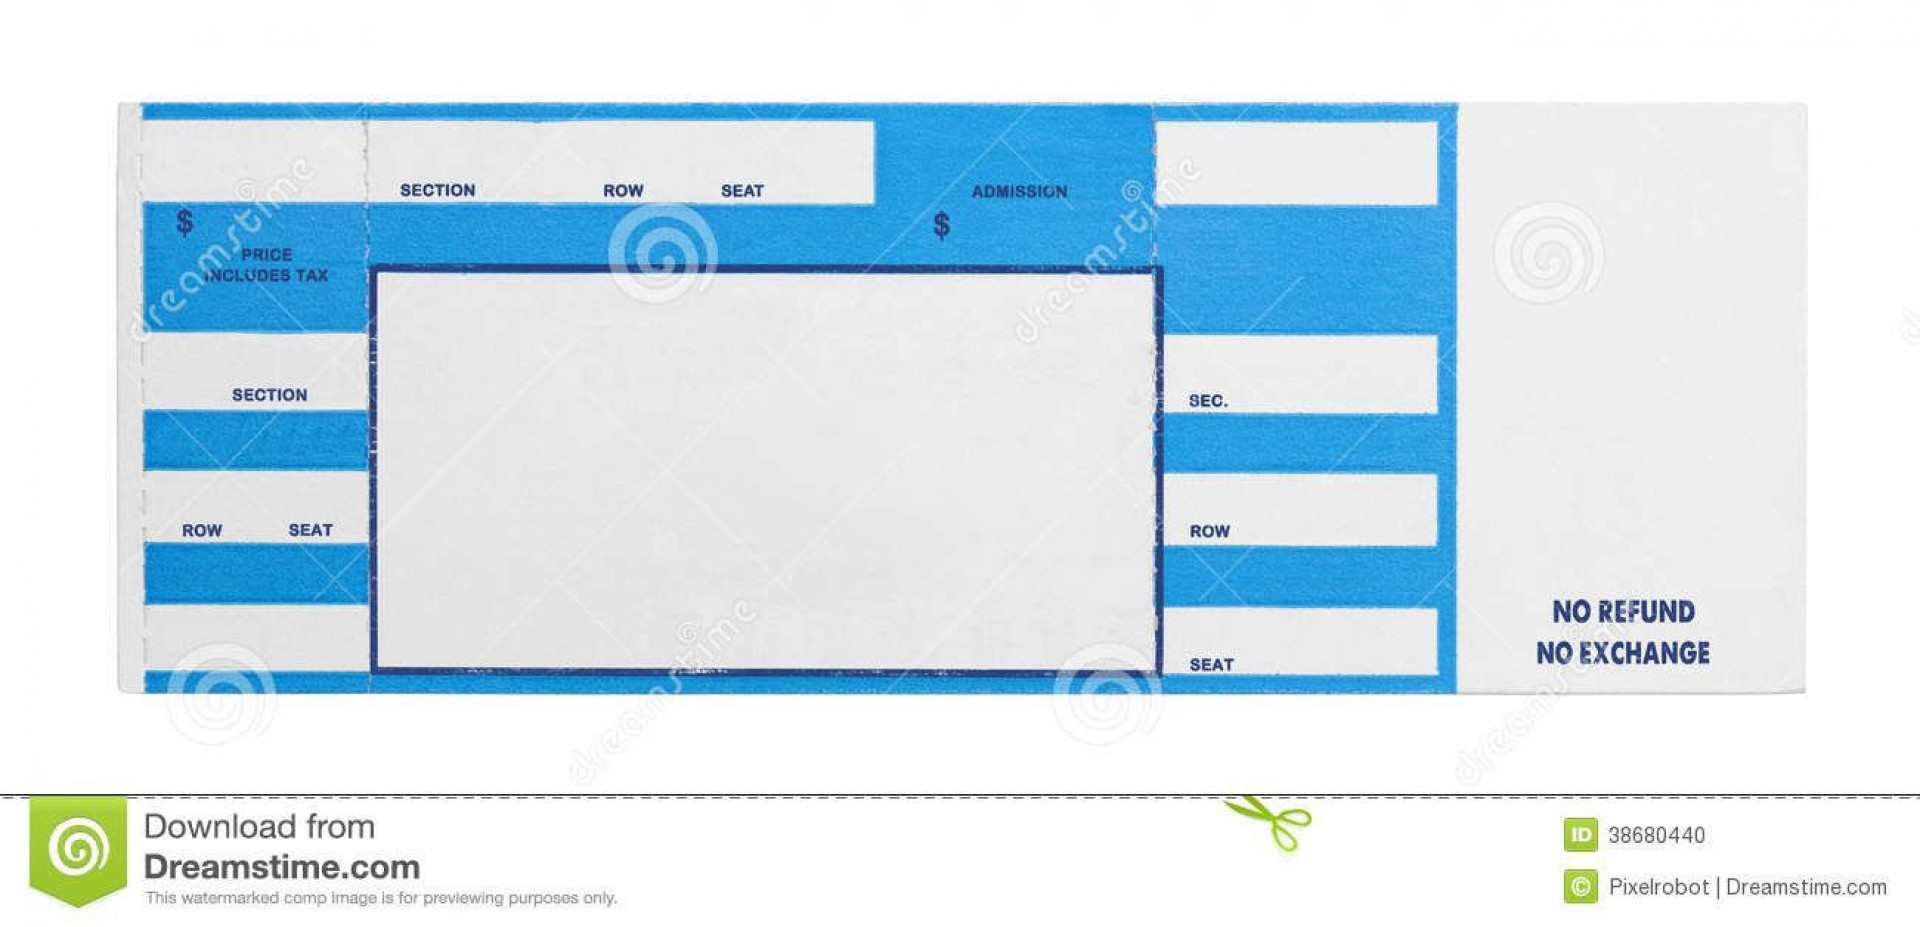 002 Incredible Concert Ticket Template Free Printable Picture  Gift1920